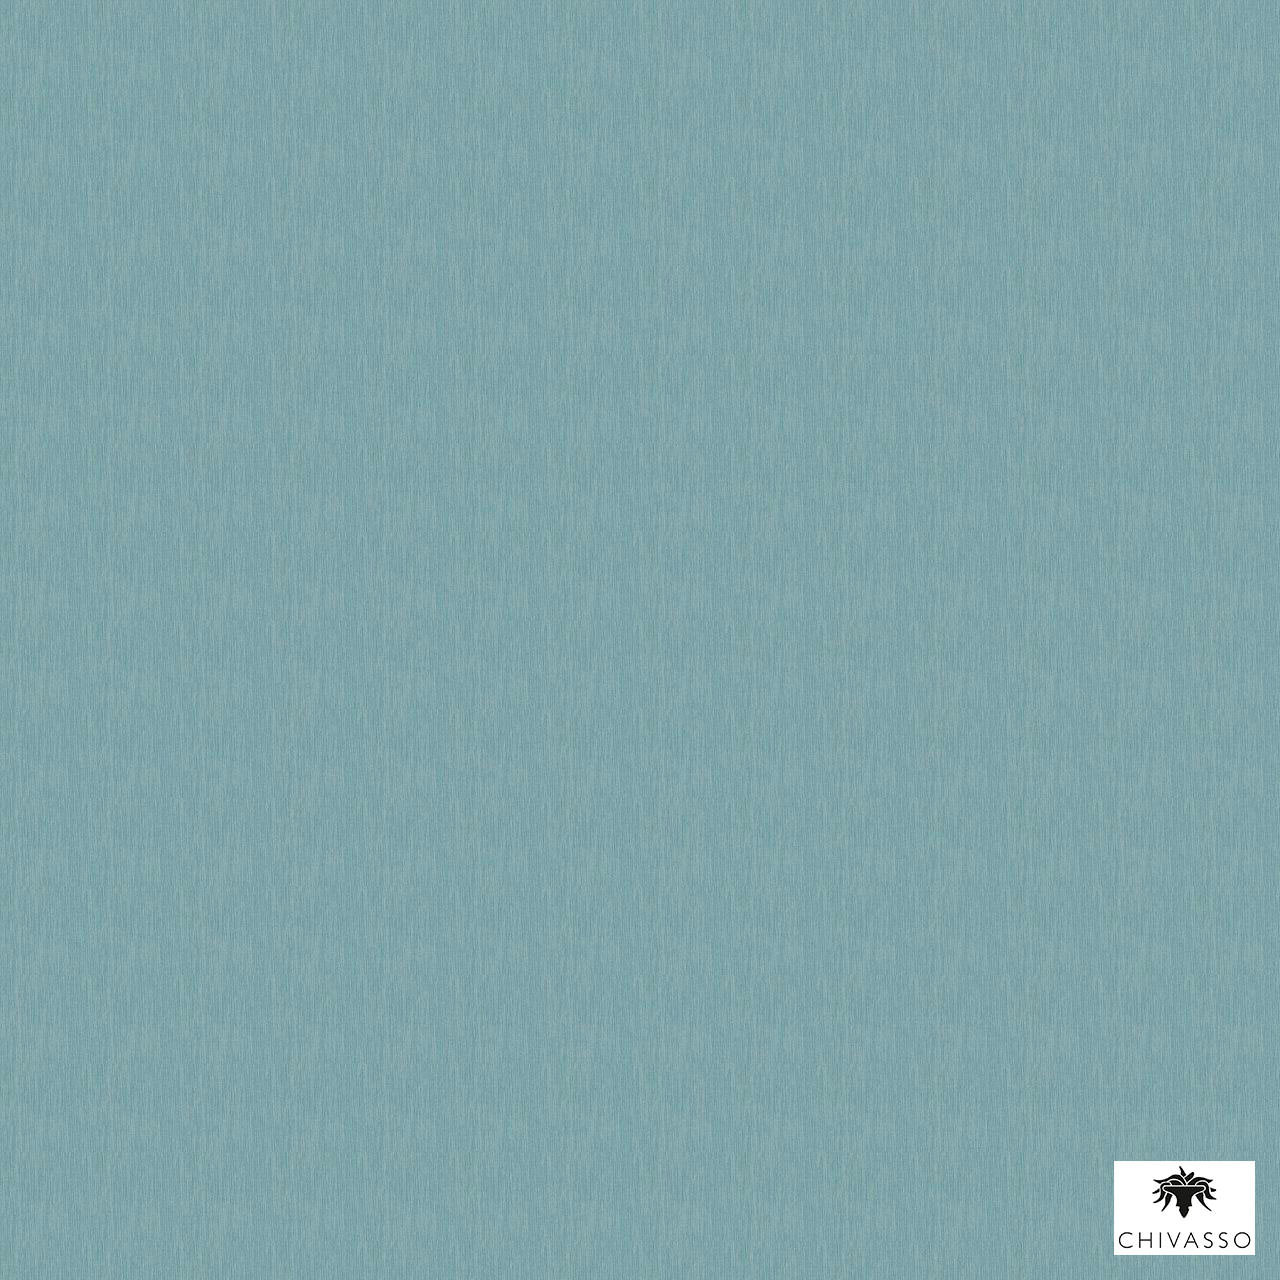 Chivasso - Colour Block - Ch9112-082  | Wallpaper, Wallcovering - Blue, Plain, Domestic Use